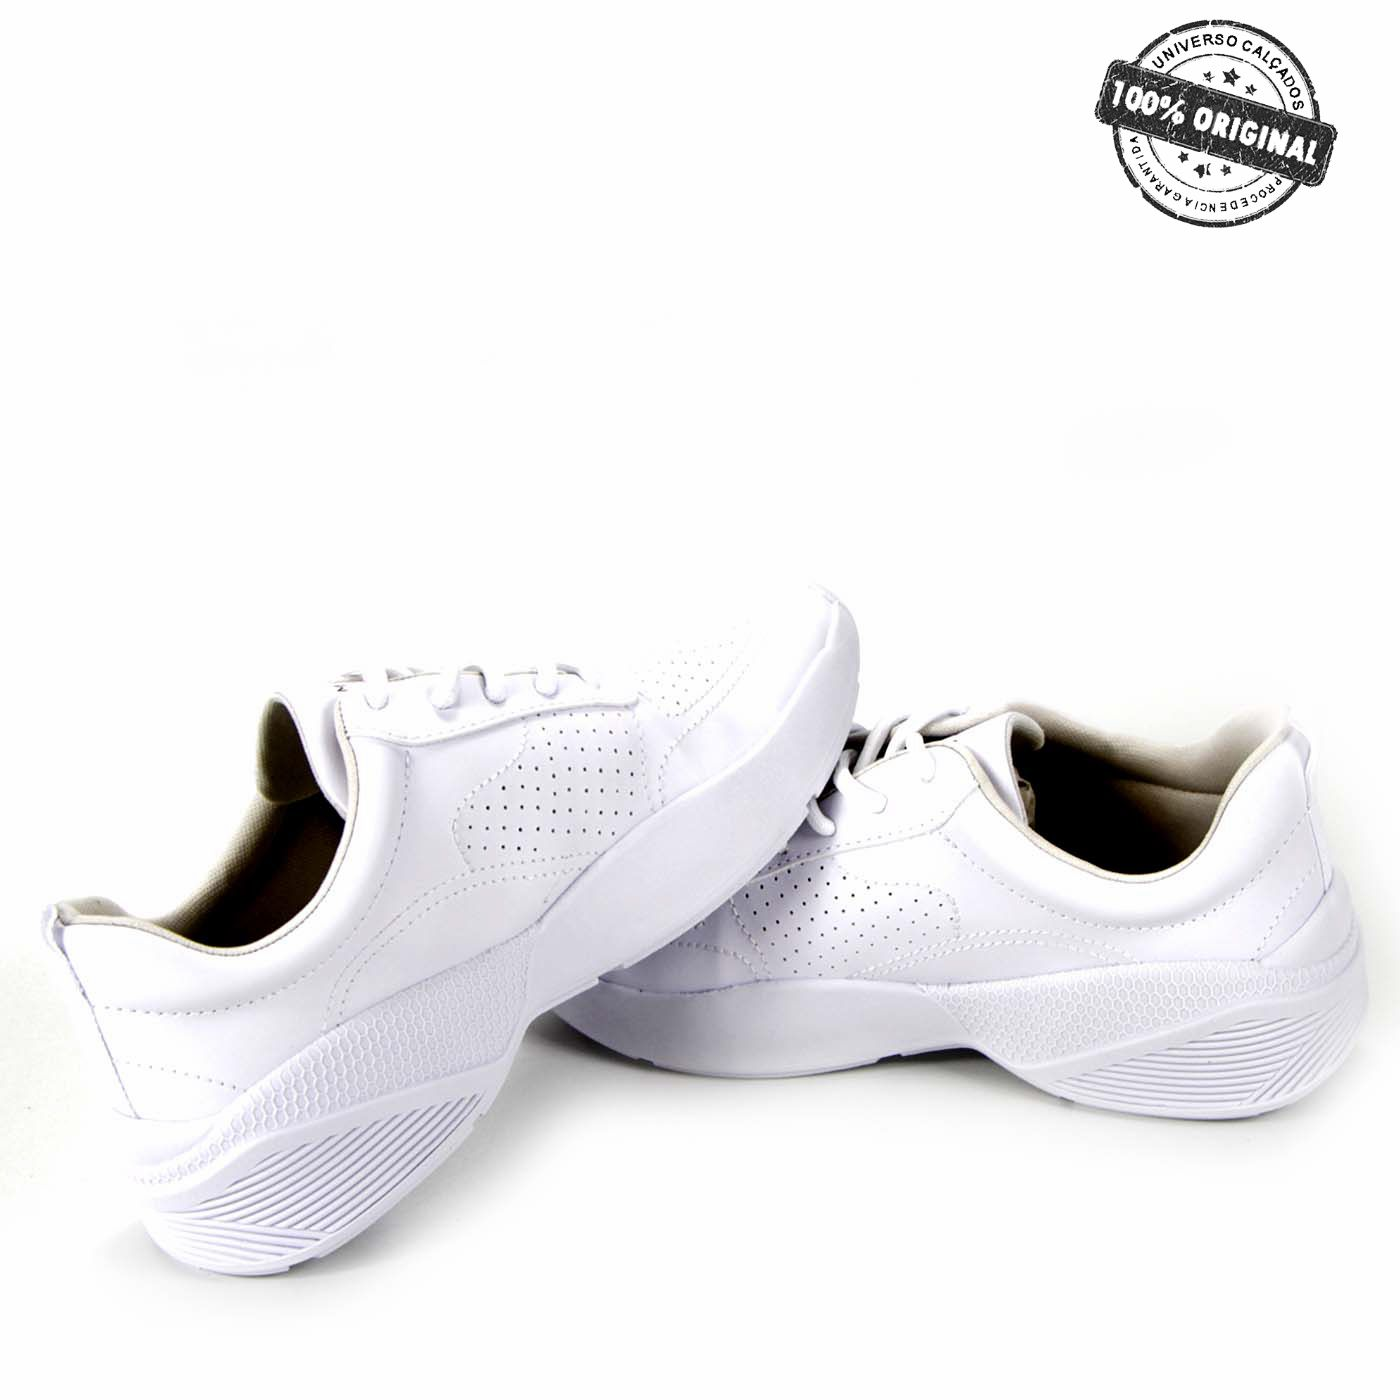 TENIS RAMARIM NAPA LIGHT PLUS - 1976101